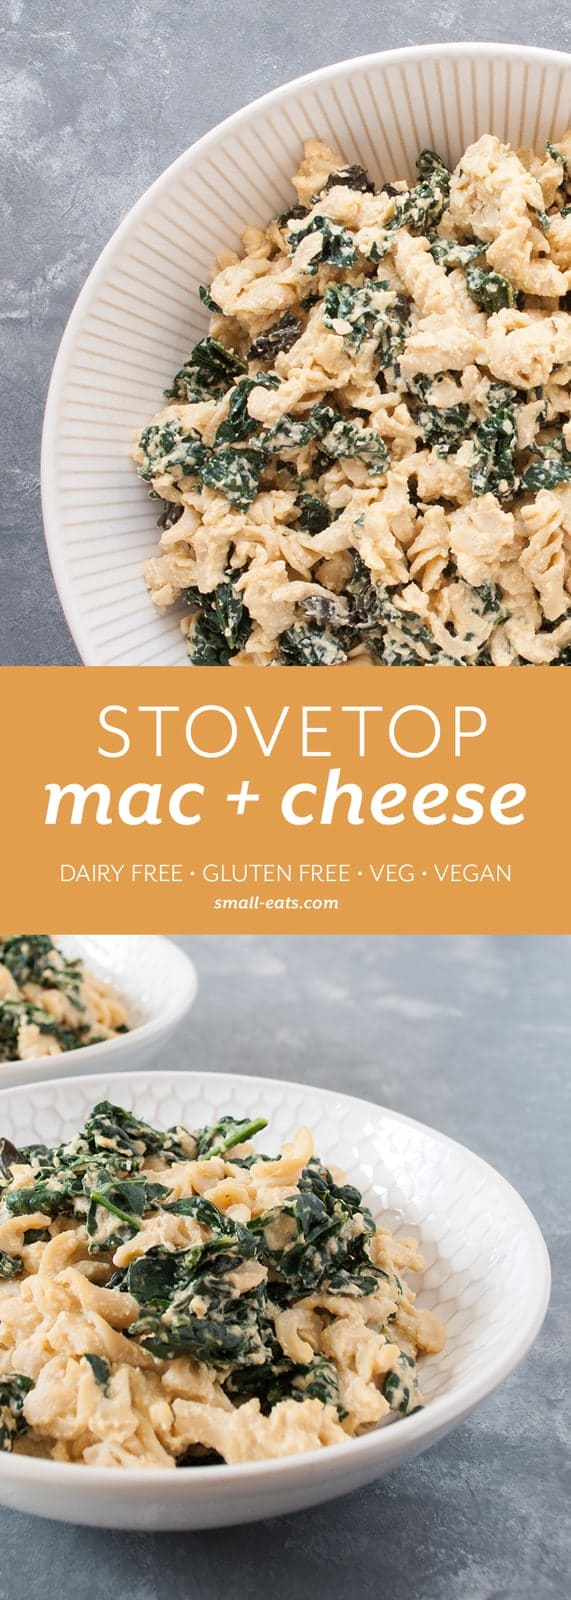 Enjoy mac and cheese again, no matter if you can't eat dairy or gluten. | Stovetop Mac and Cheese (Gluten and Dairy Free) from small-eats.com